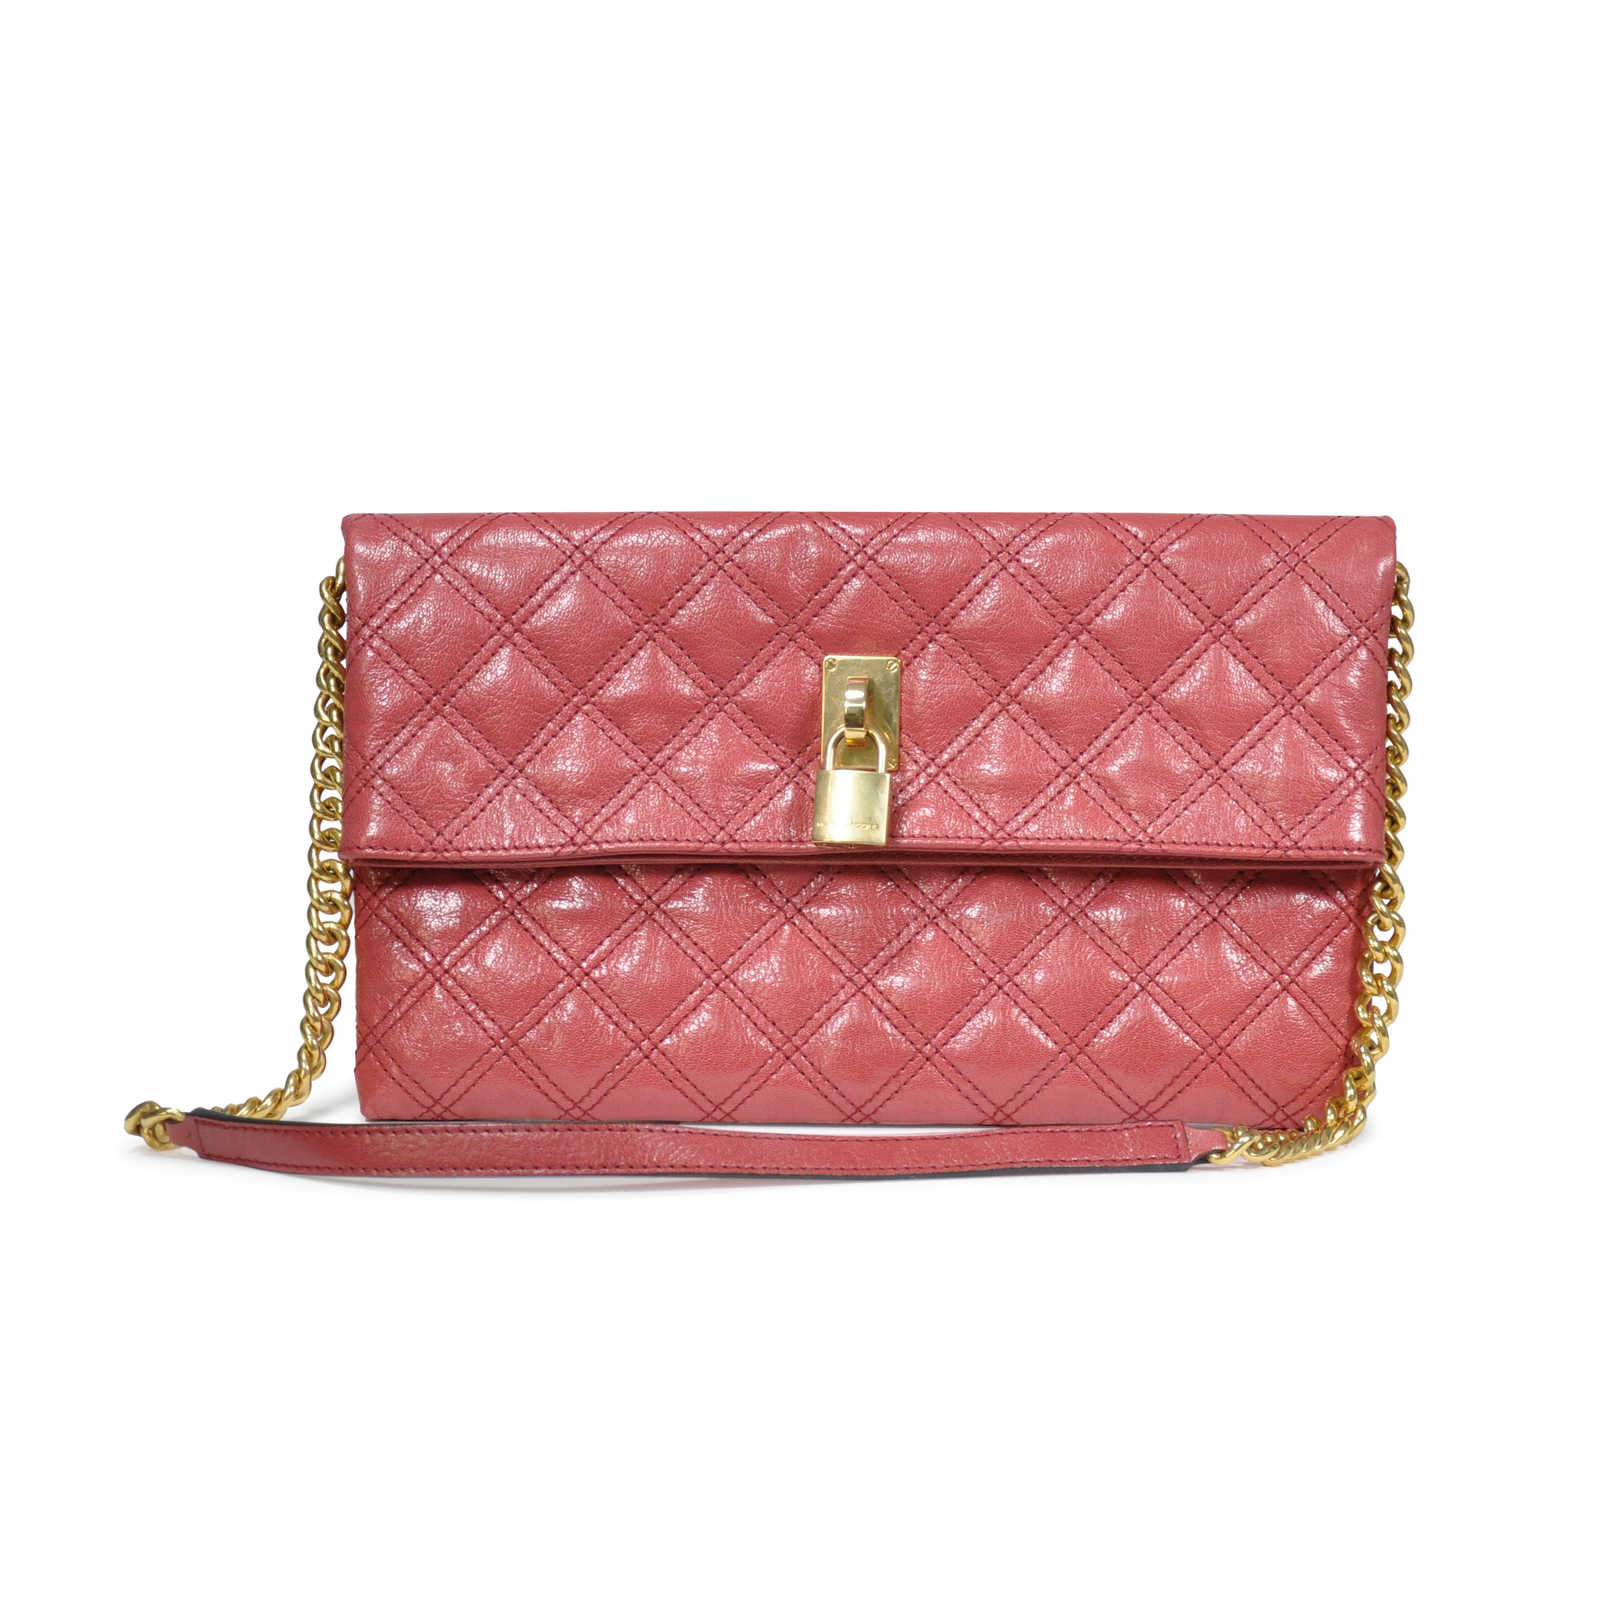 596f24094 Authentic Second Hand Marc Jacobs Sandy Foldover Convertible Shoulder  Clutch (PSS-225-00008 ...